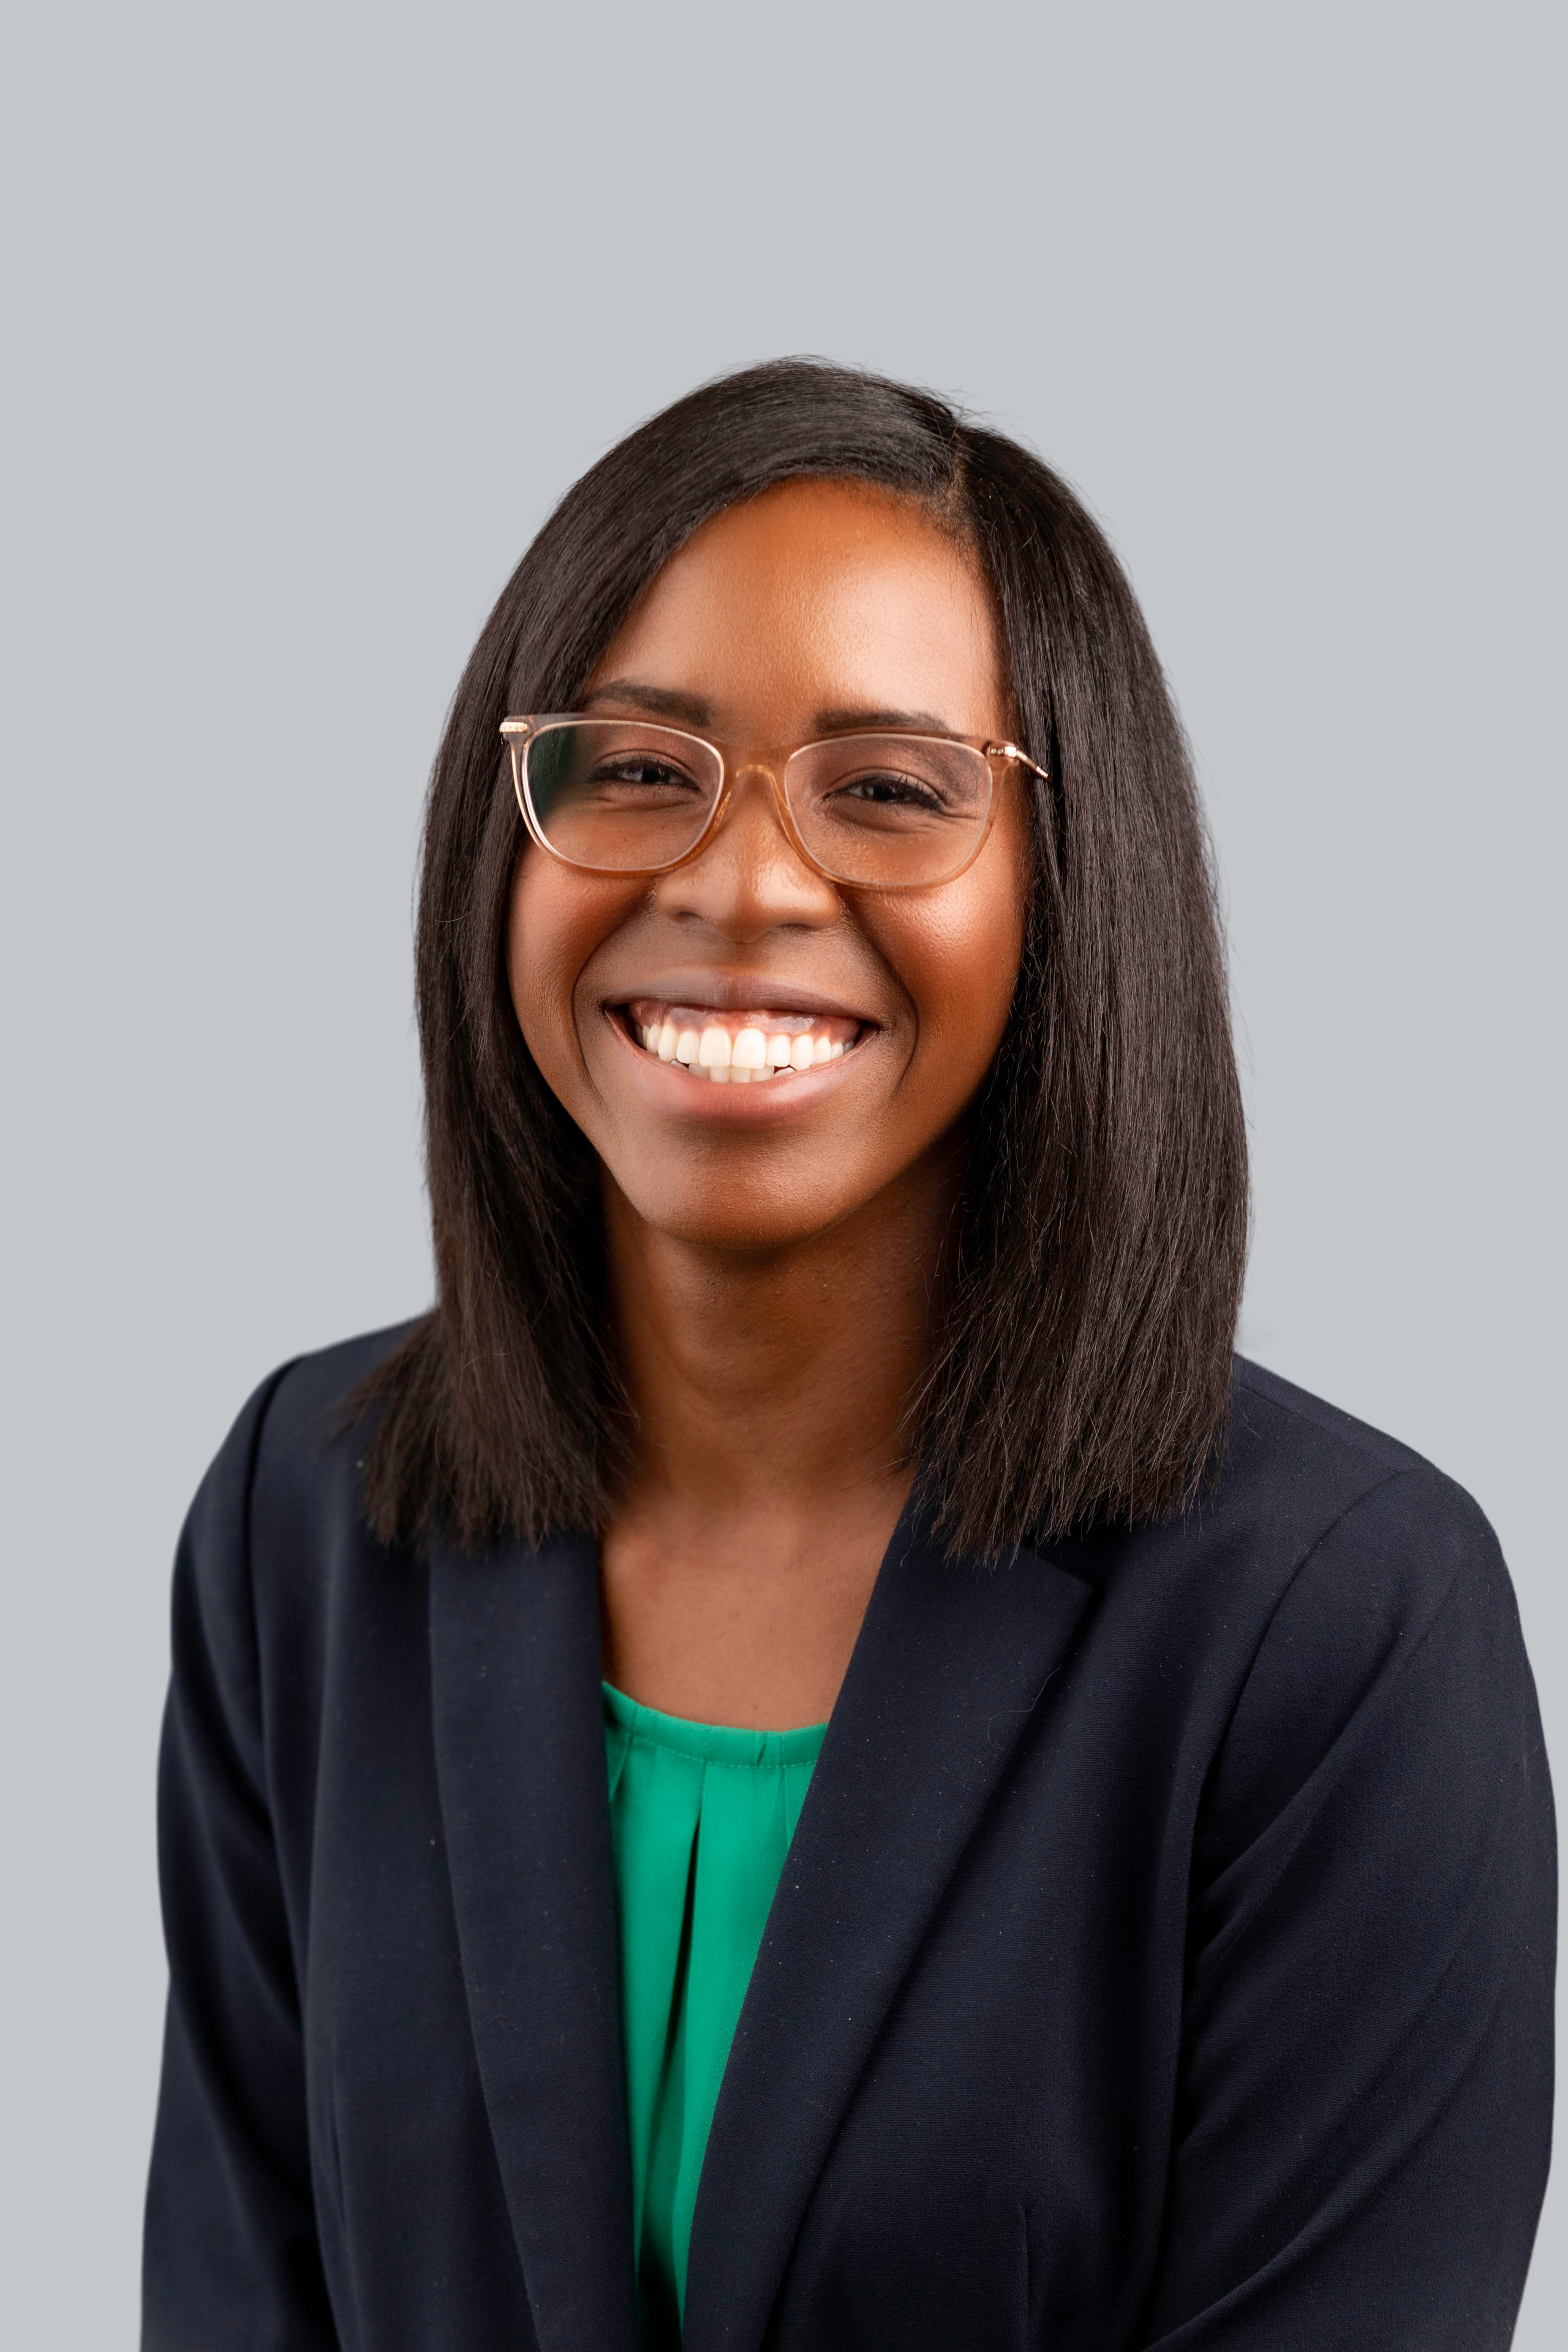 Christina Johnson, Vice President and Branch Manager of Mount Pleasant